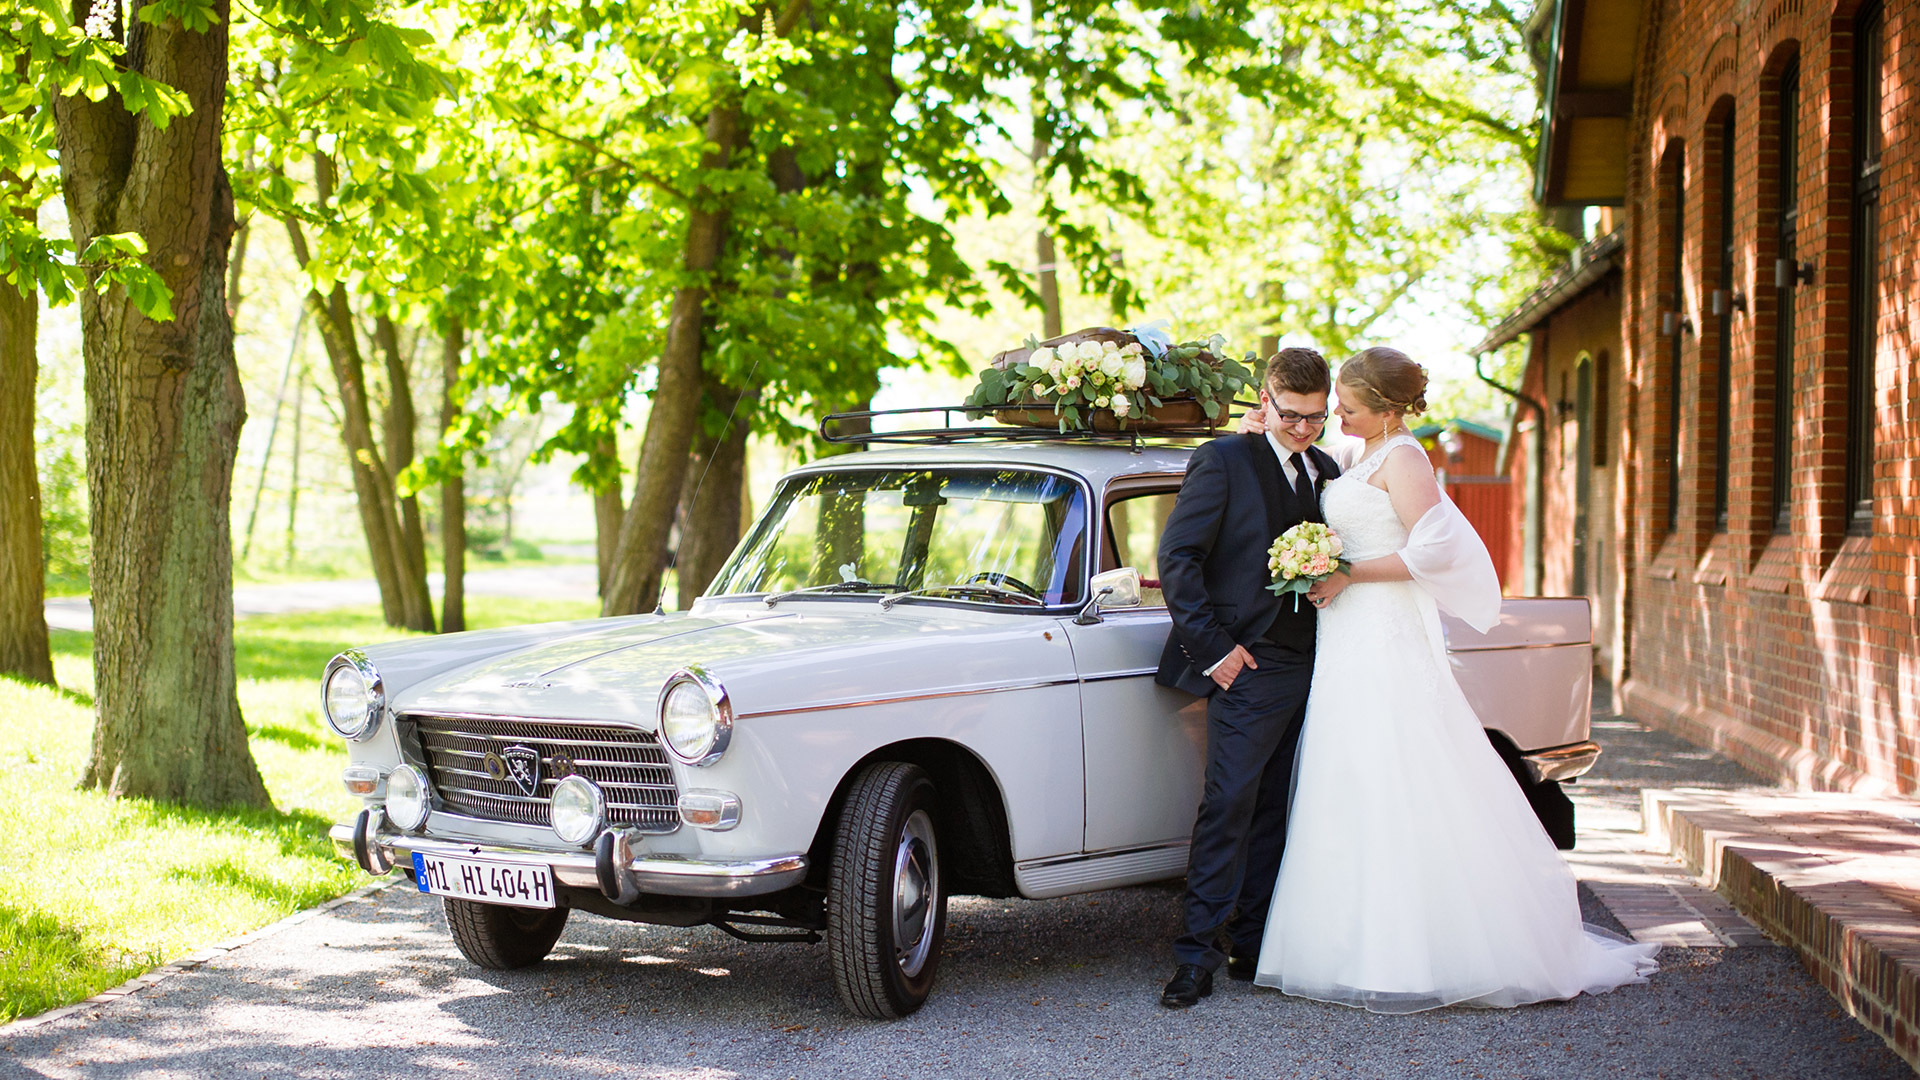 Heiraten-Alte-Schule-Eventlocation-Peter